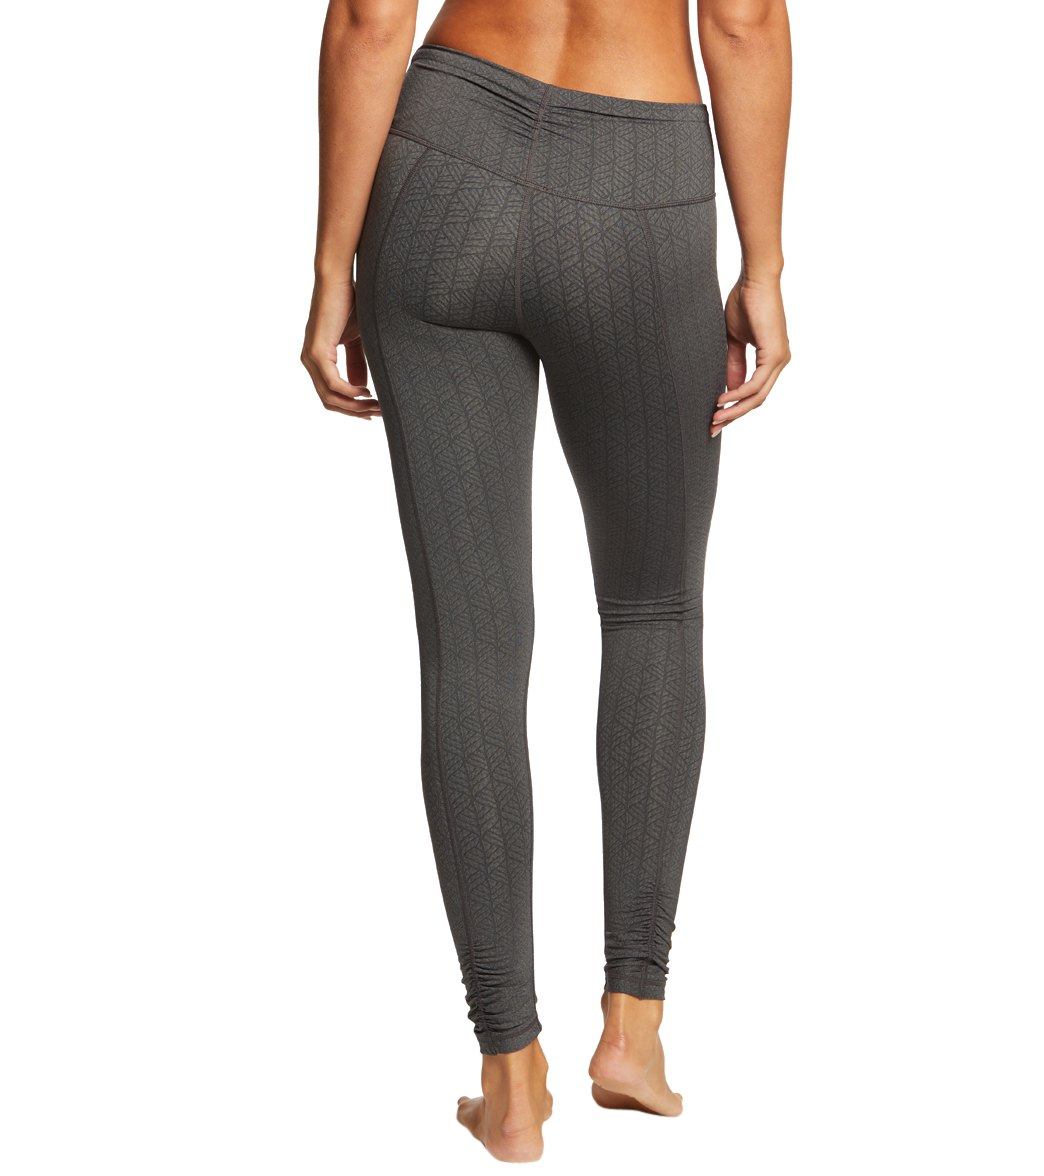 01e5096c0b Prana Misty Yoga Leggings at YogaOutlet.com - Free Shipping